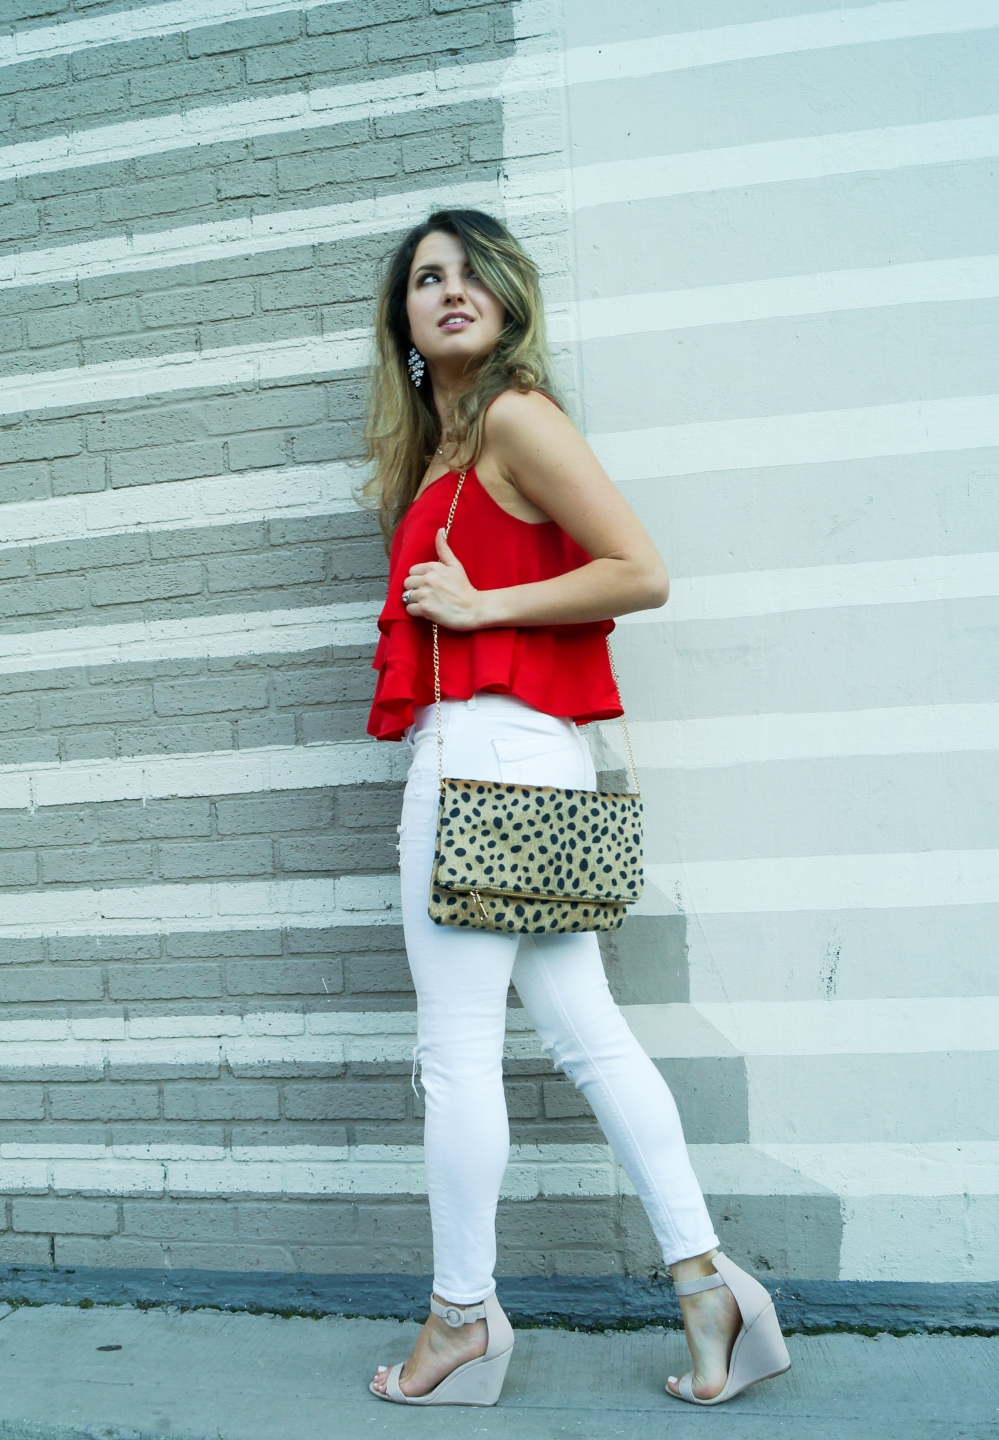 White jeans, red cami and cheetah print clutch